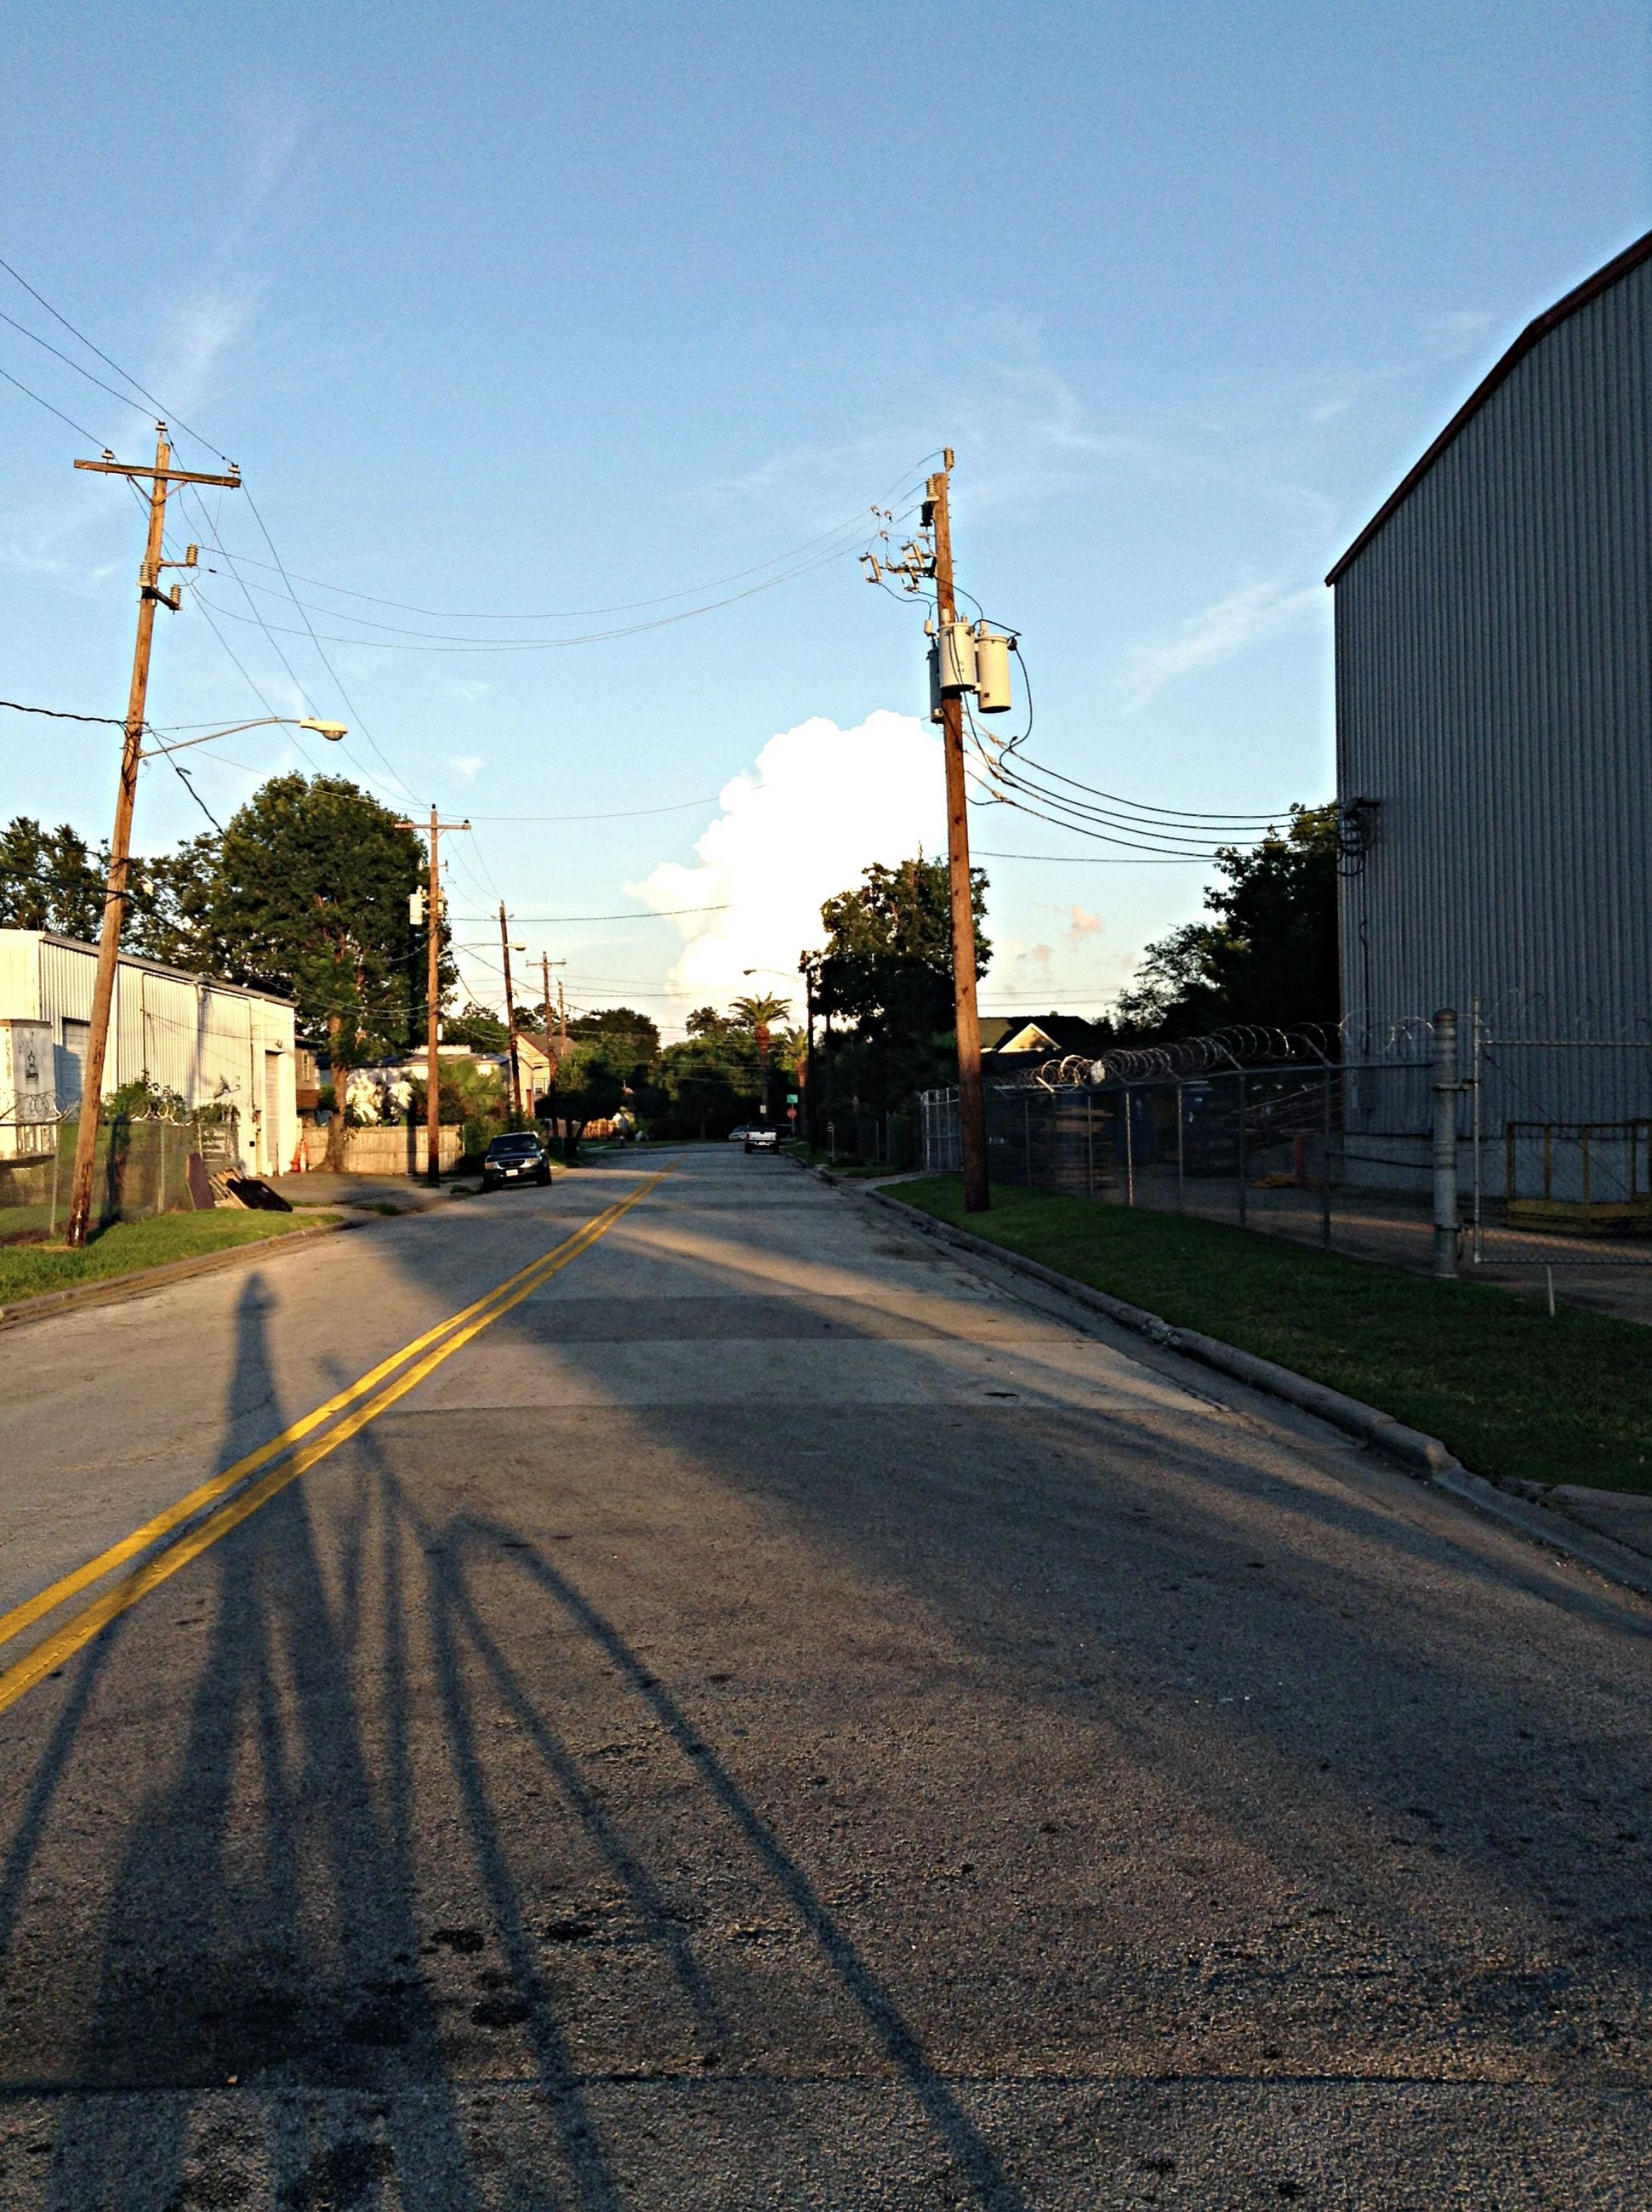 the way forward, building exterior, transportation, architecture, built structure, road, street, diminishing perspective, sky, vanishing point, street light, road marking, electricity pylon, power line, empty, empty road, city, asphalt, long, outdoors